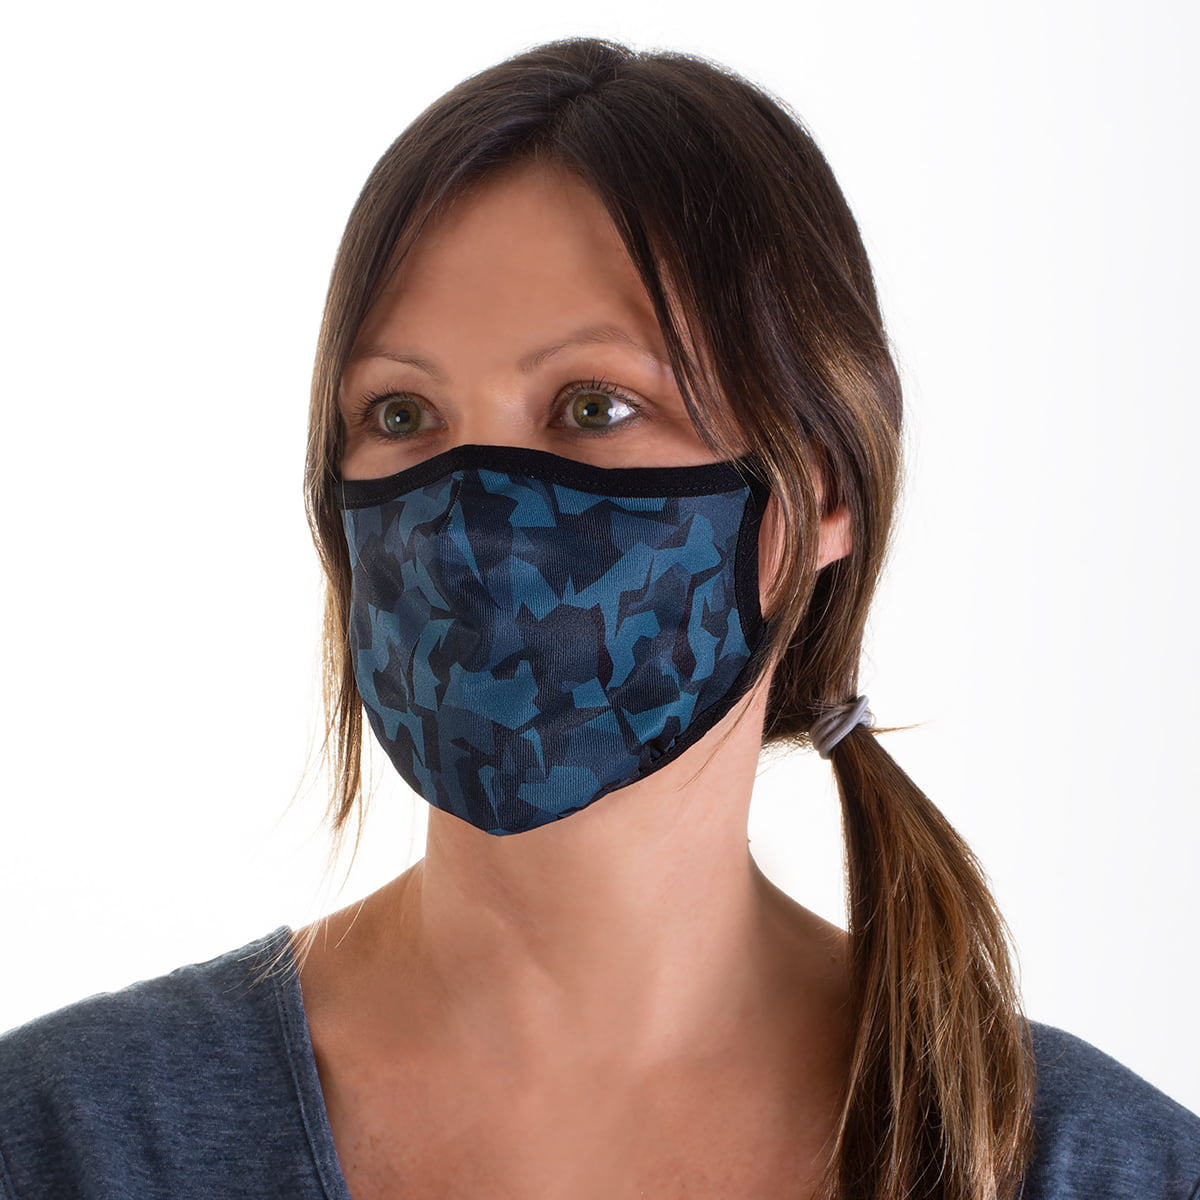 Camo Adjustable Mask with Disposable Filter